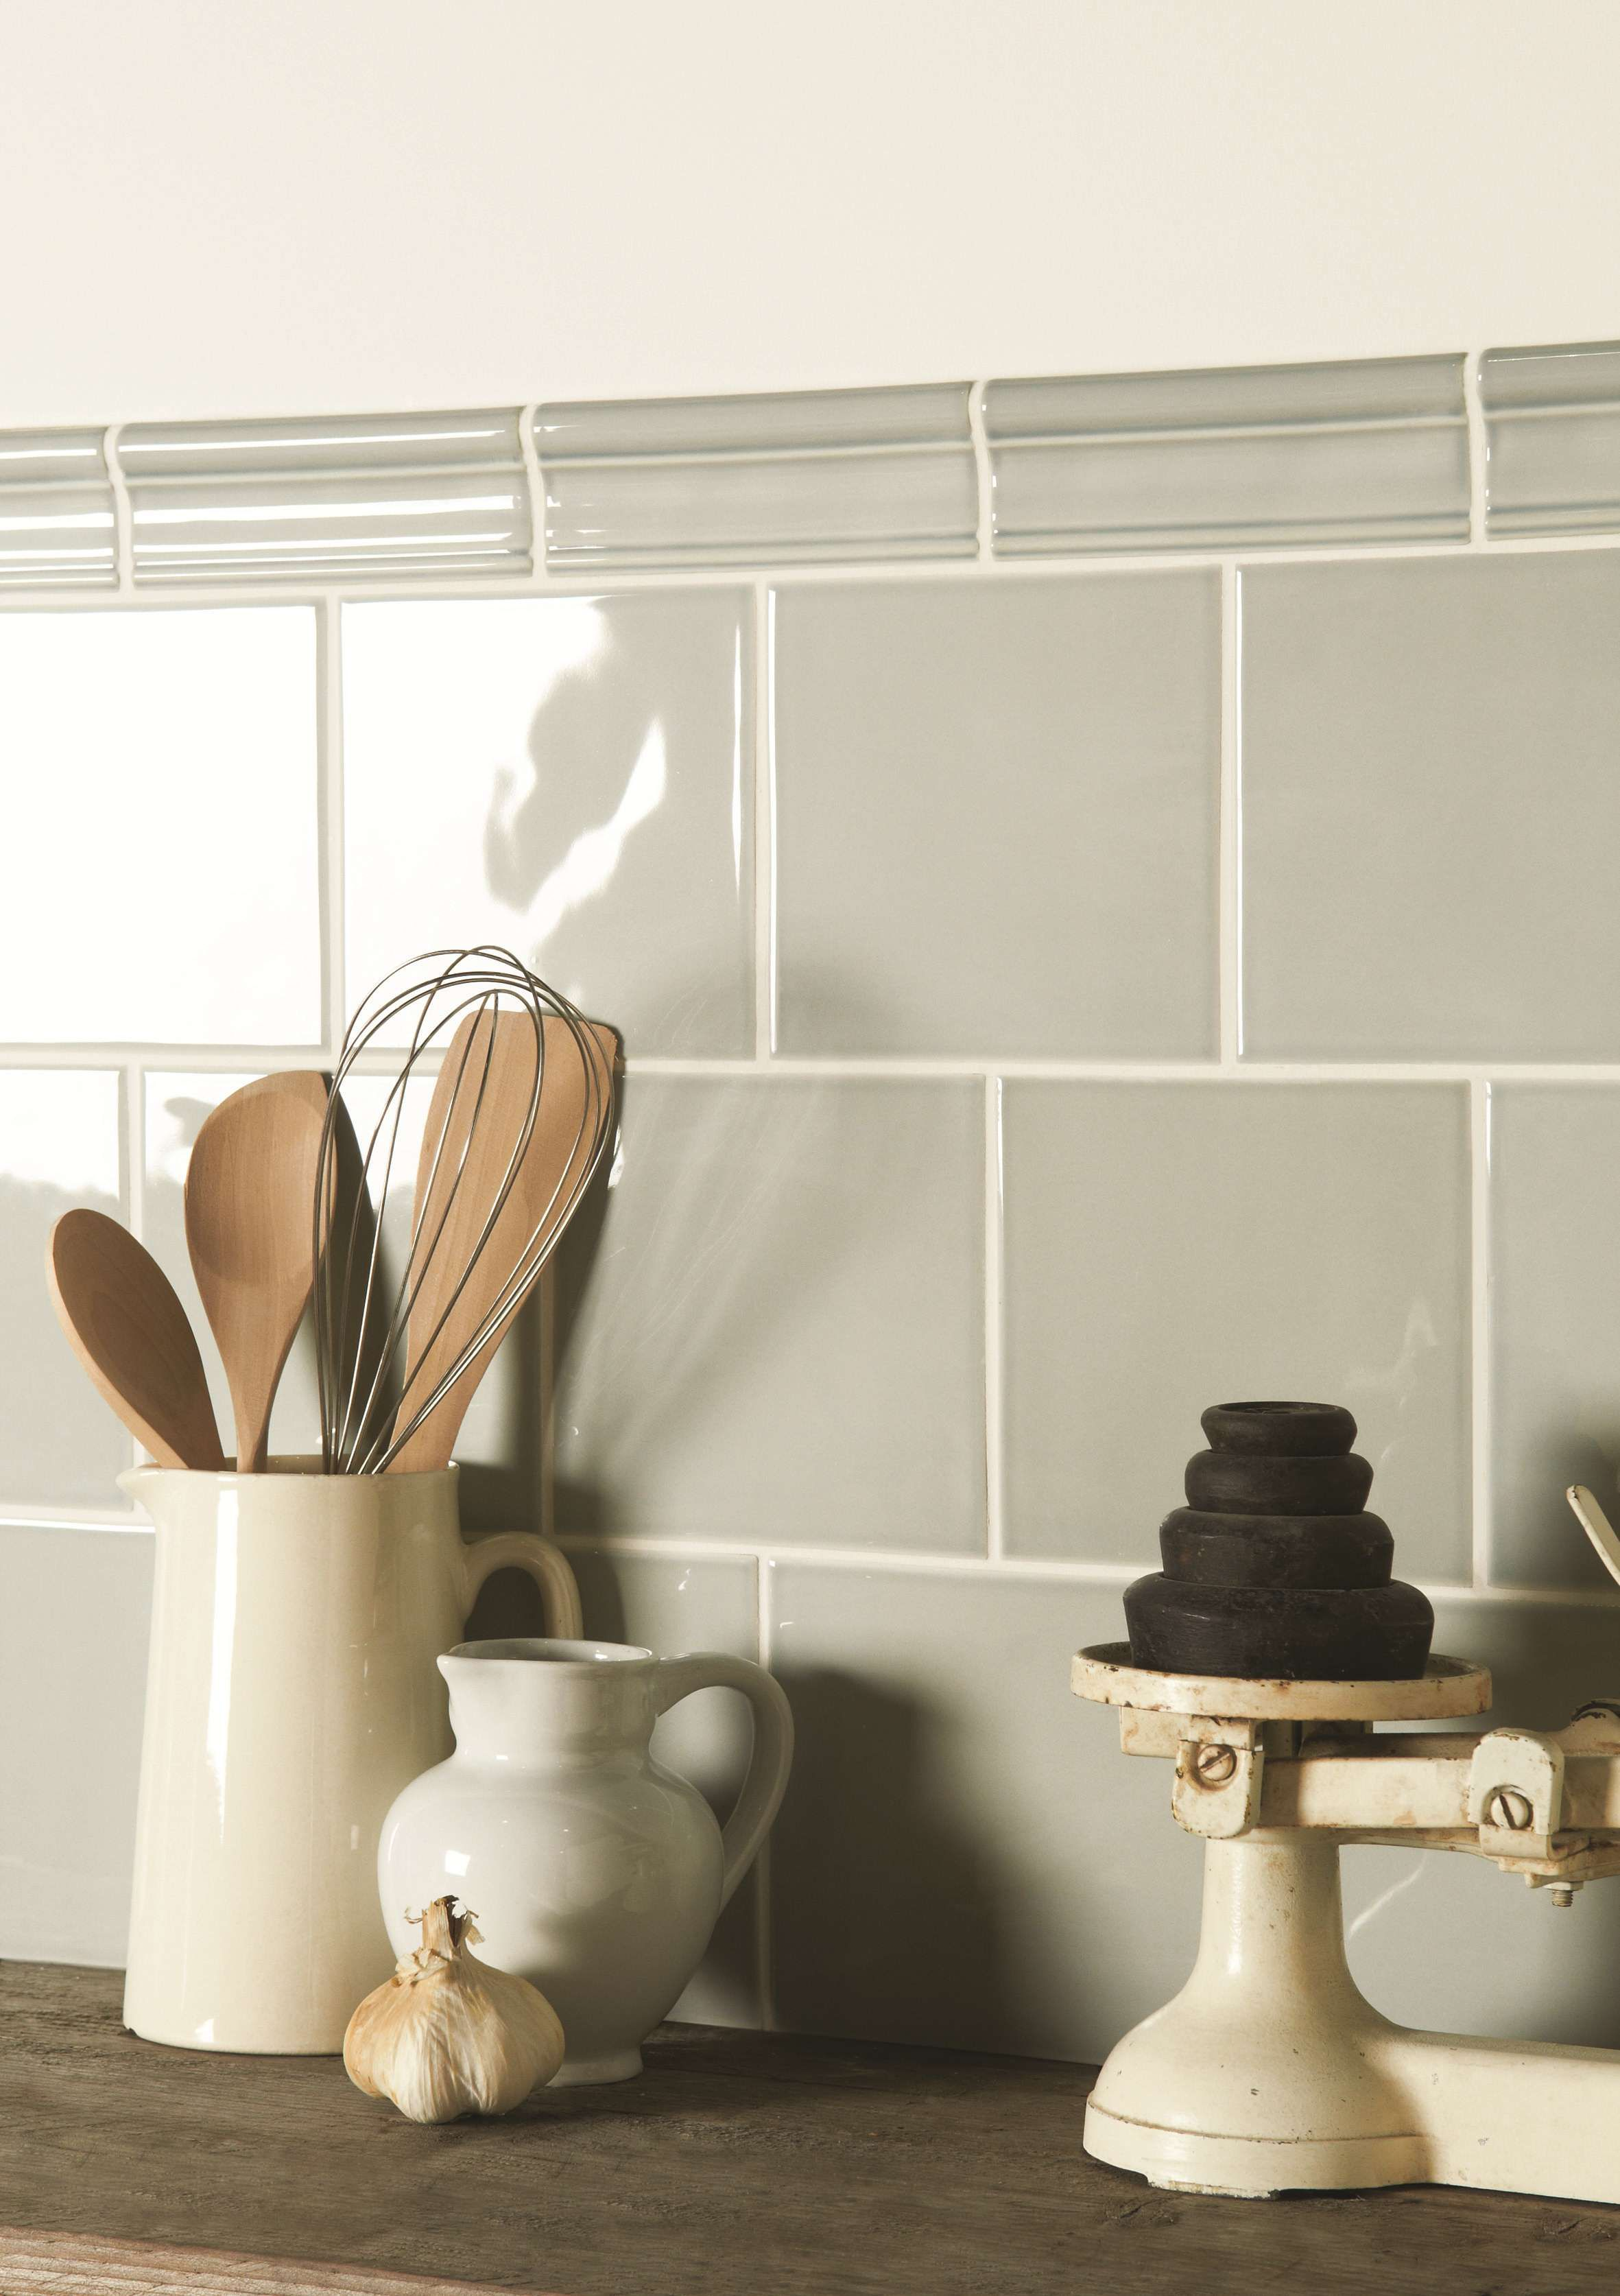 Sudbury gloss field tiles are a beautiful soft green for a sleek sudbury gloss field tiles are a beautiful soft green for a sleek and sophisticated look with dailygadgetfo Choice Image